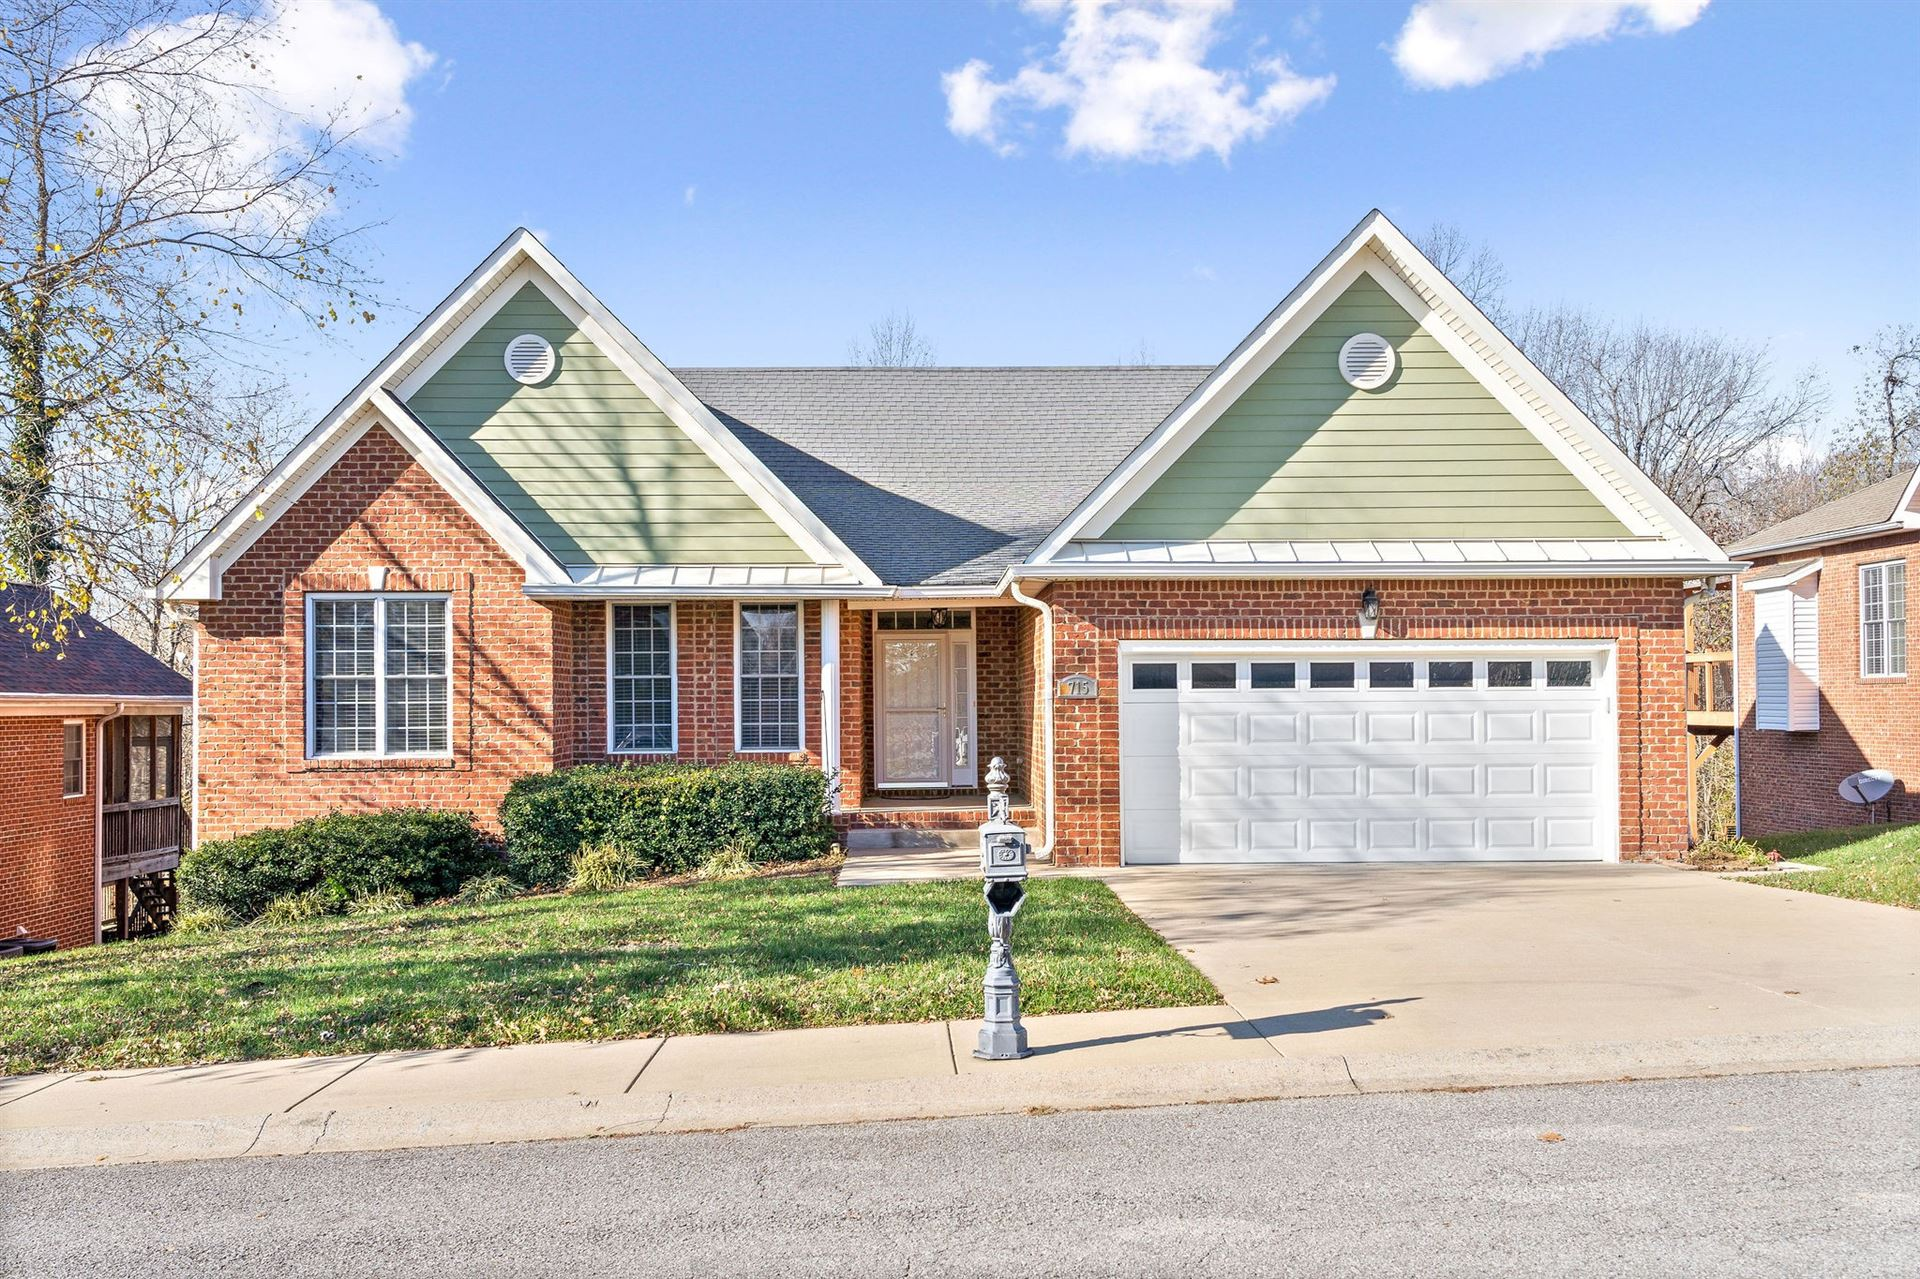 715 Courtland Ave, Clarksville, TN 37043 - MLS#: 2209525